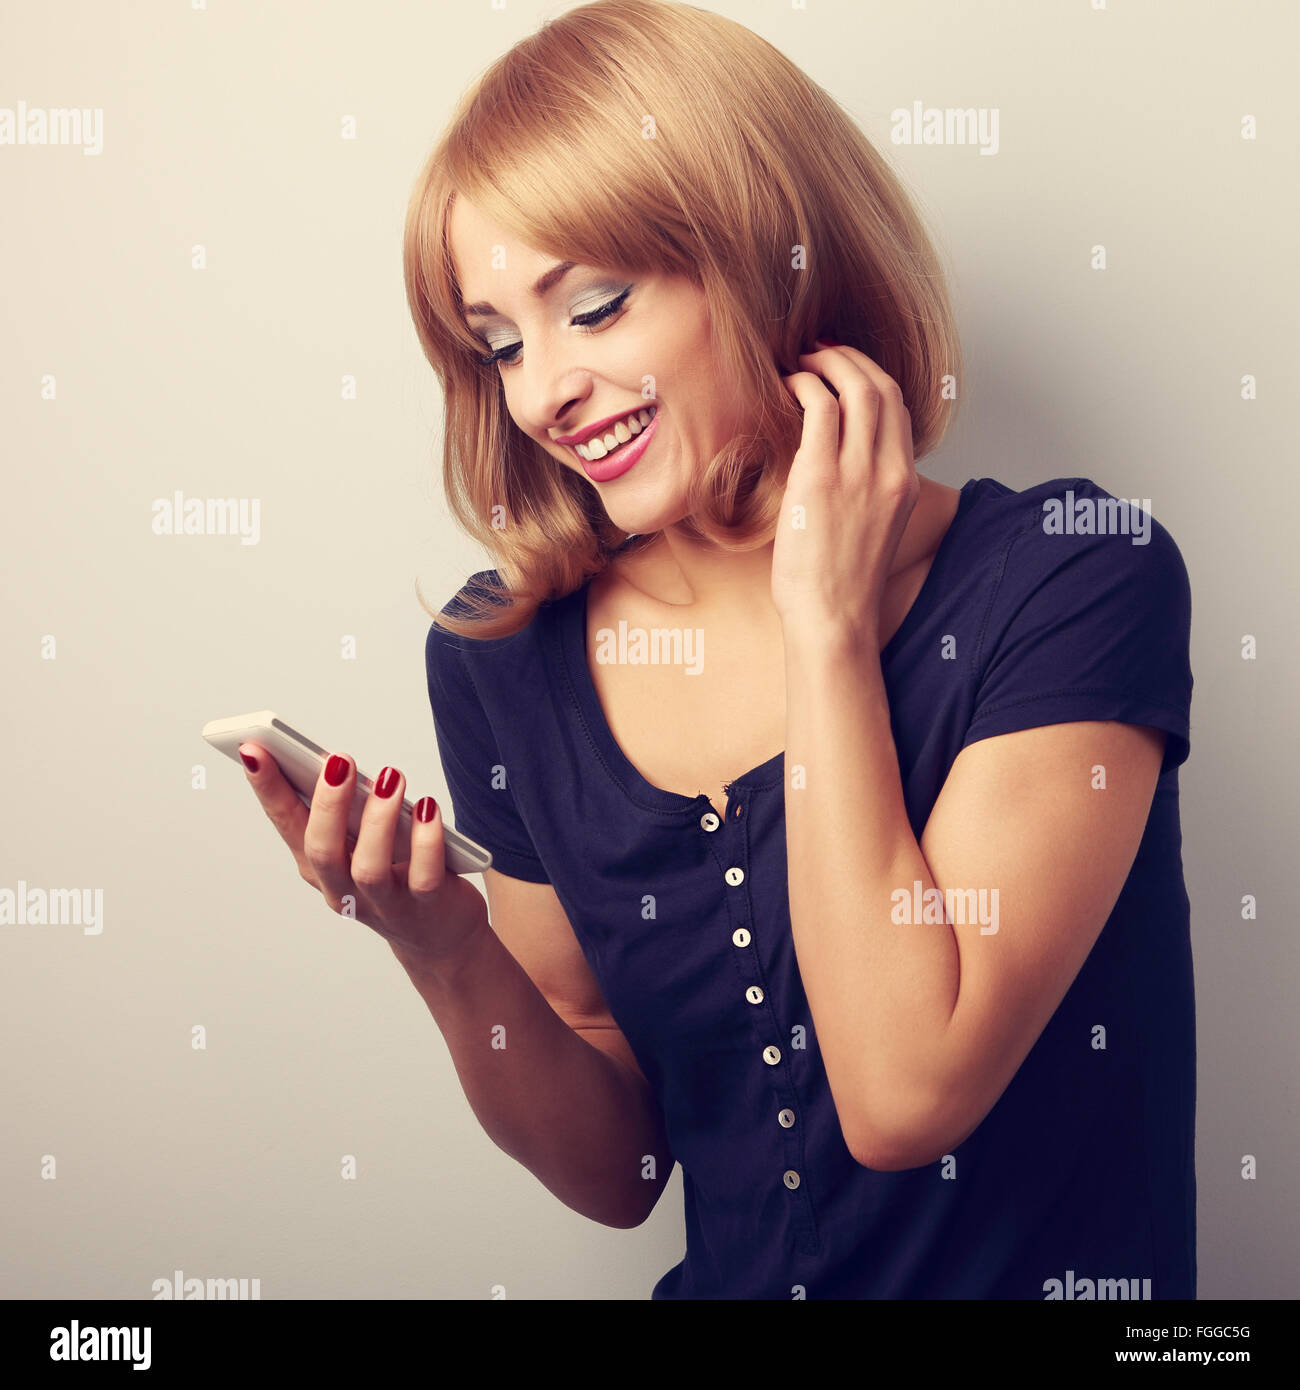 Happy smiling blond woman reading sms in mobile phone. Toned closeup portrait - Stock Image